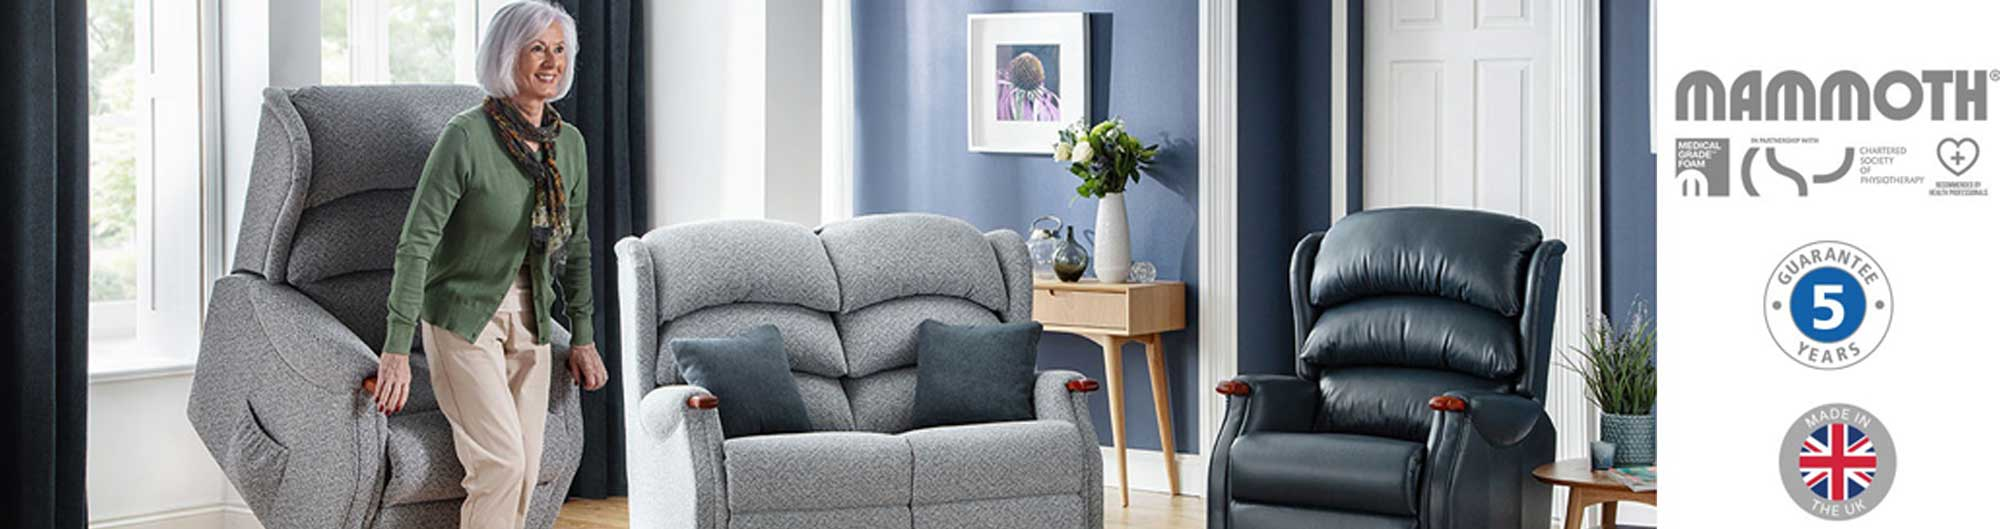 Celebrity Furniture Range